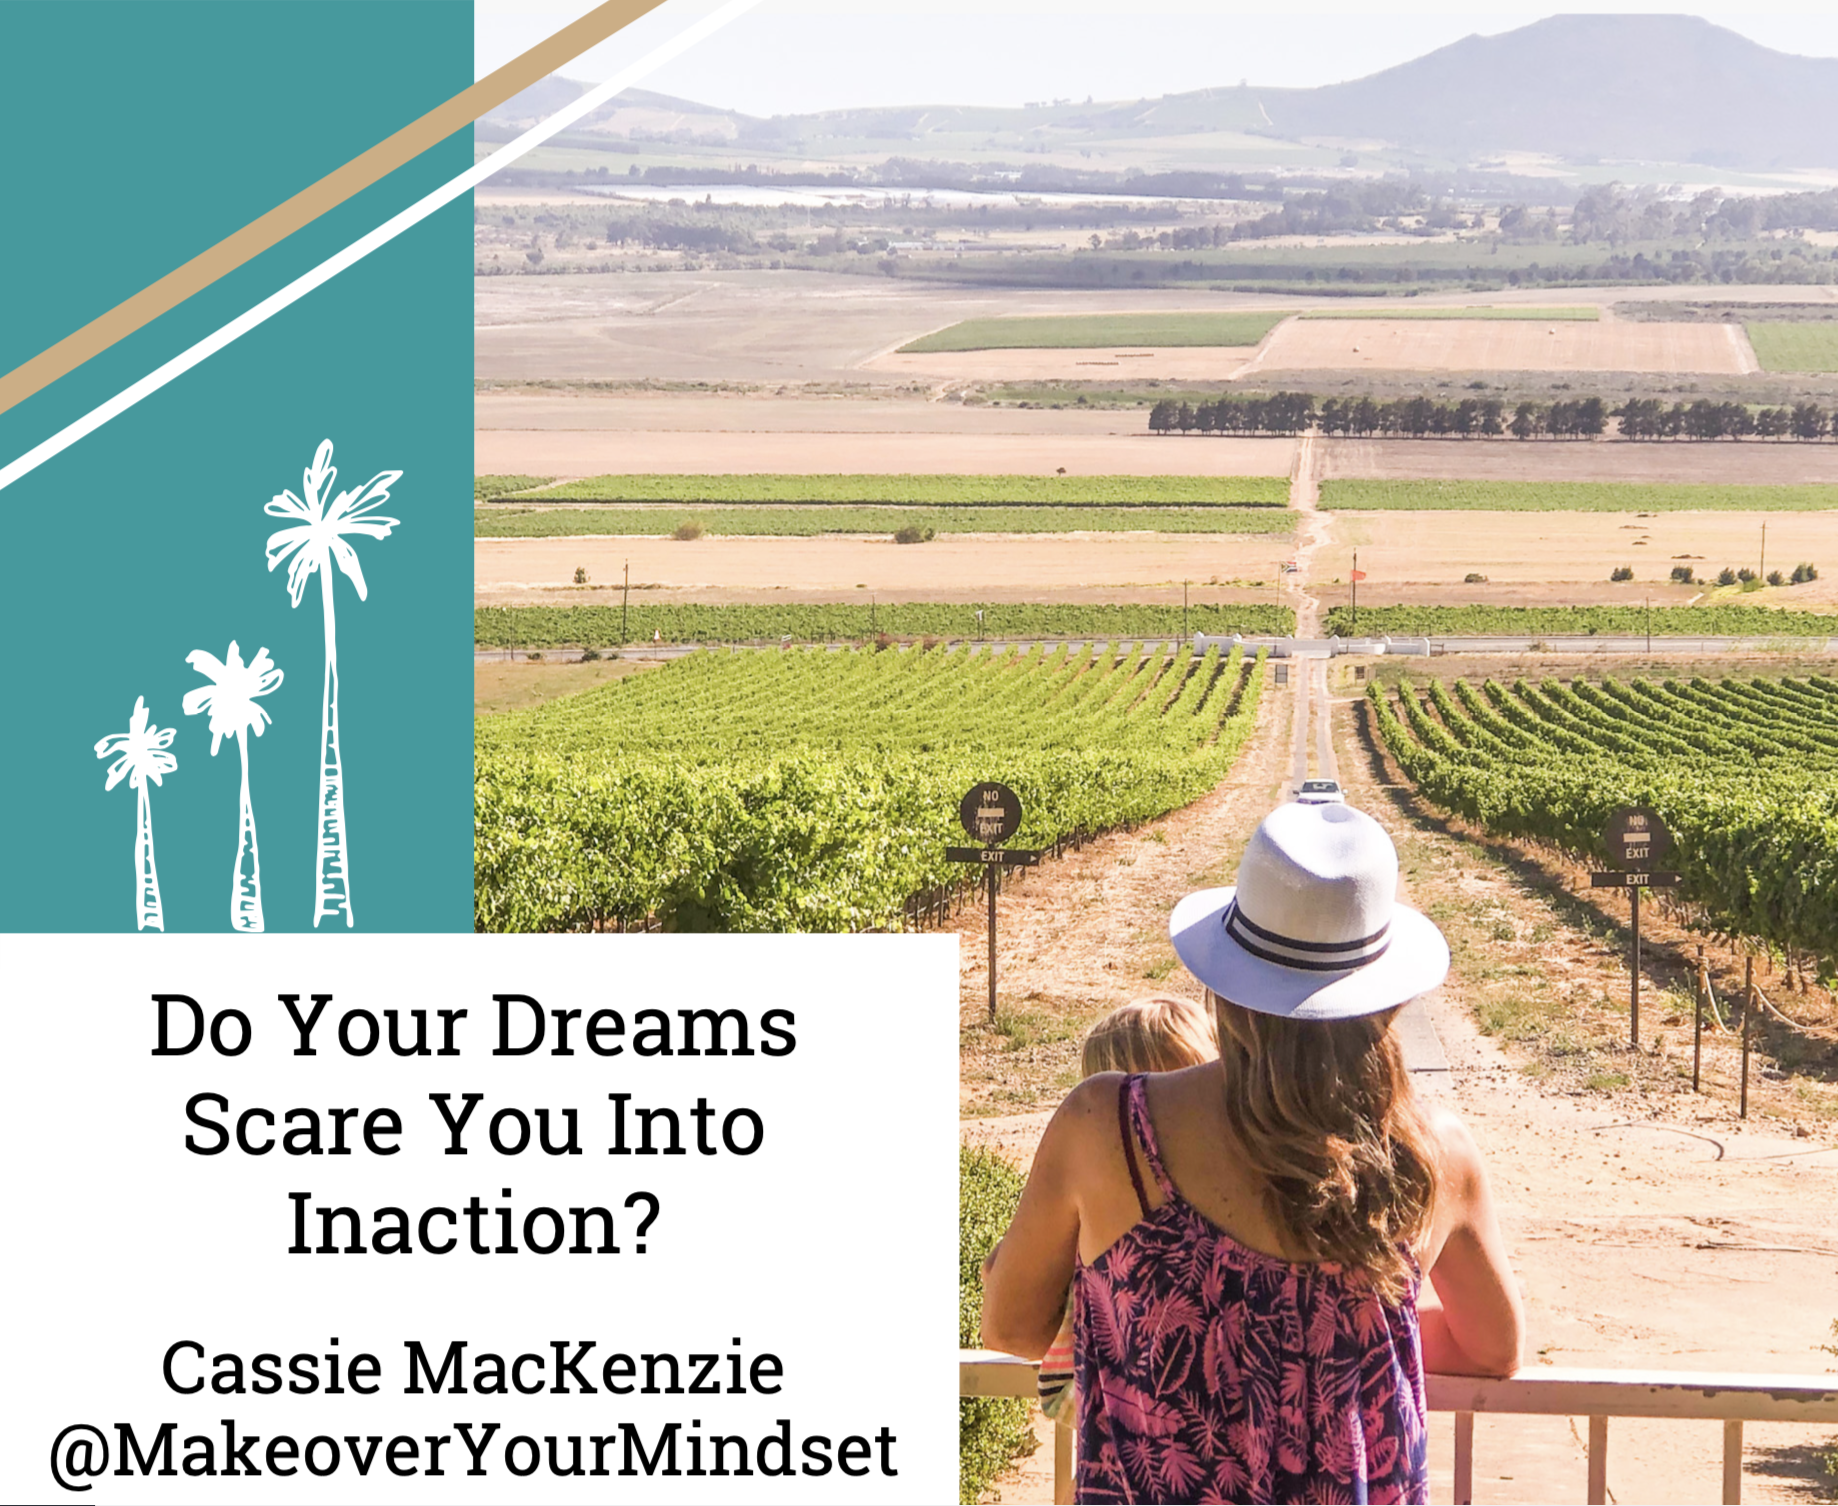 Do Your Dreams Scare You Into Inaction? by Cassie MacKenzie